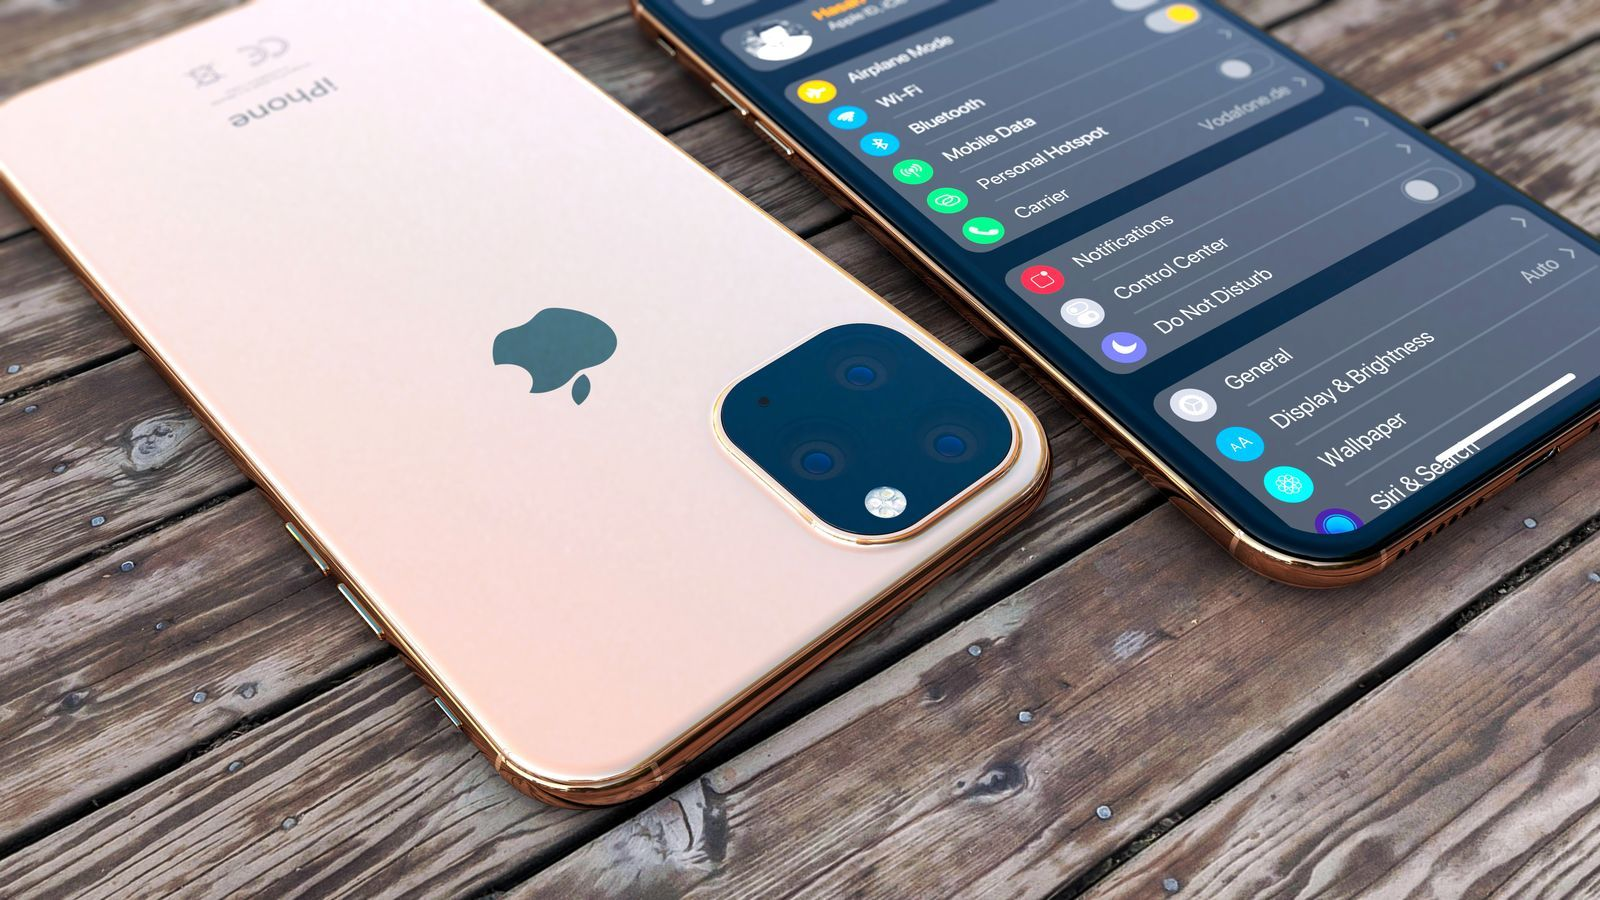 Sforum - Latest technology information page iPhones-2019-1 Apple cuts down on the old generation iPhone to focus on producing new iPhones